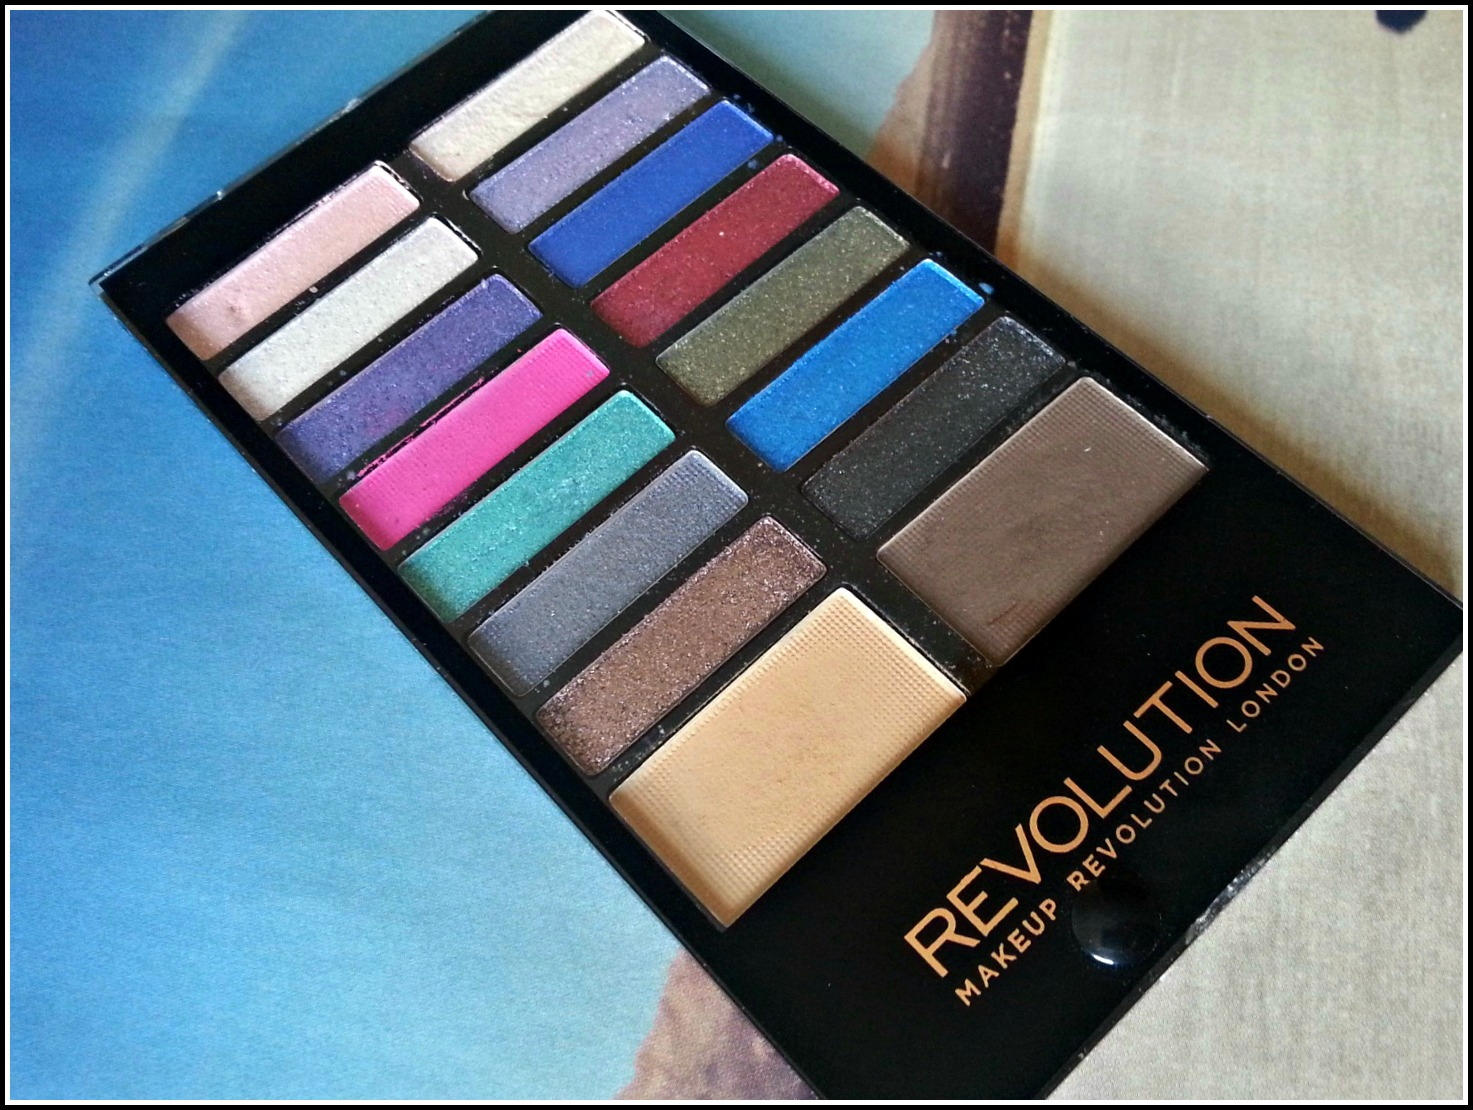 Makeup Revolution Make Believe Eyeshadow and Eyebrow Palette